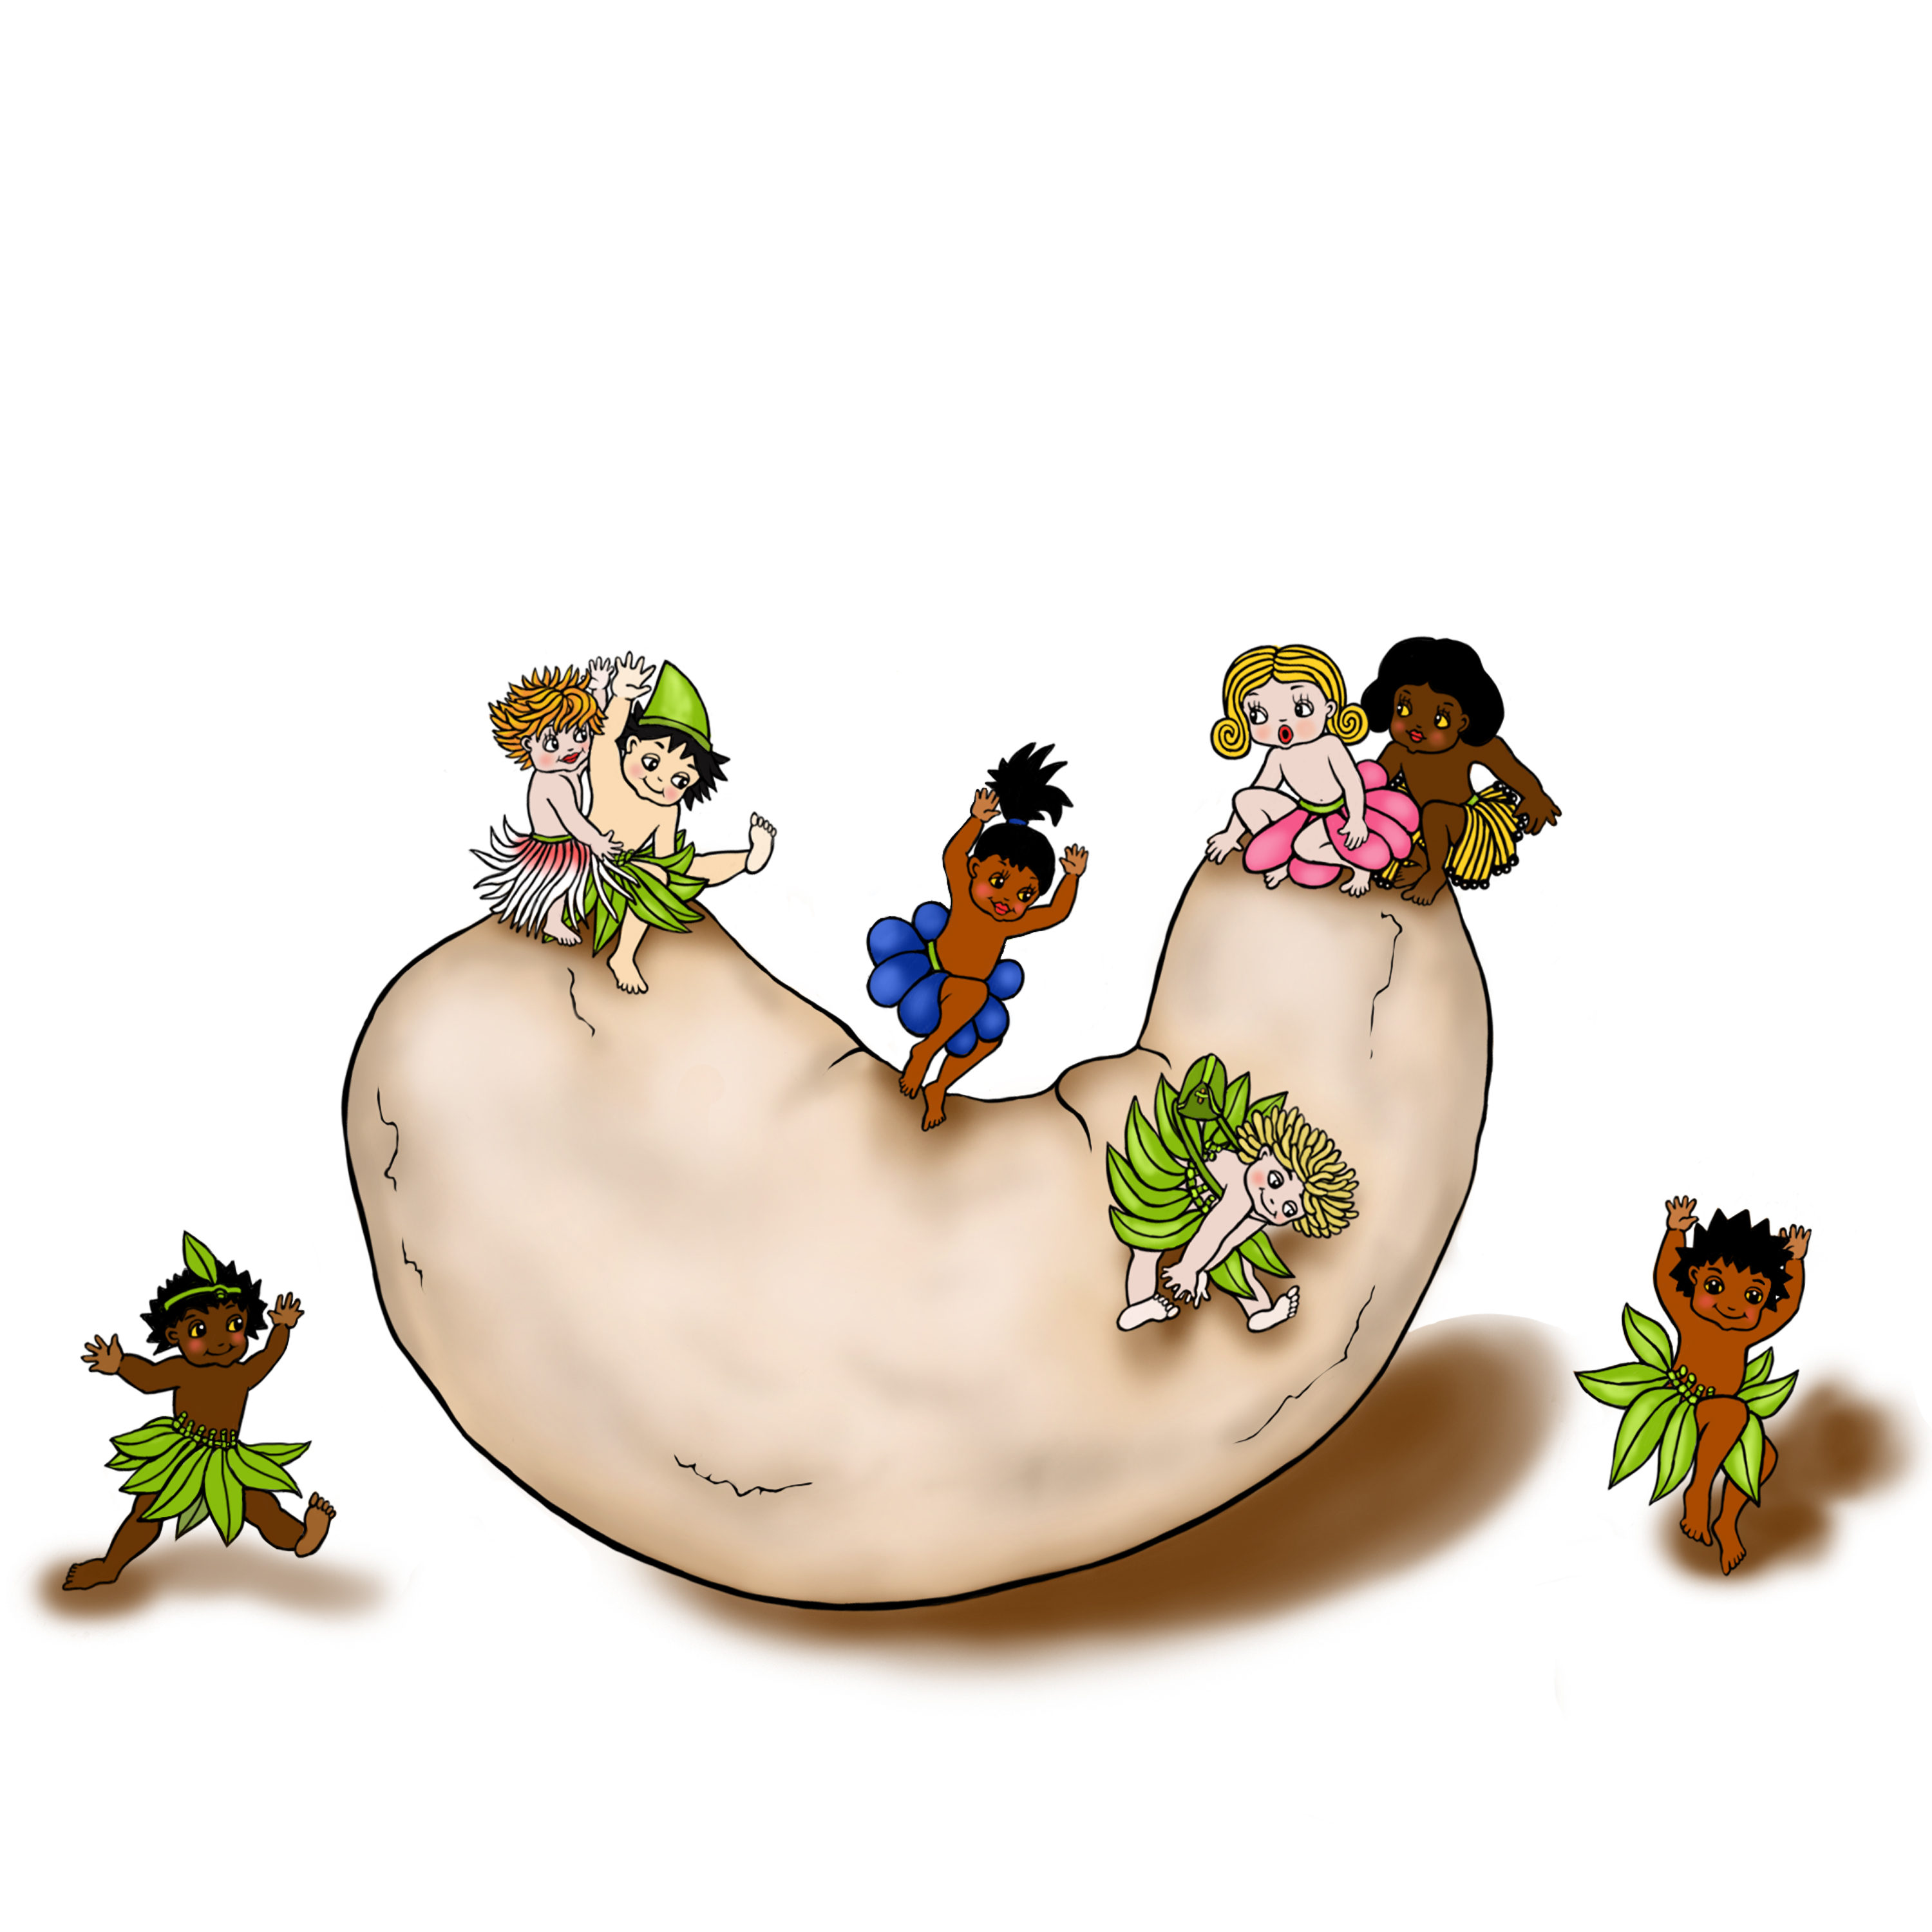 cashew illustrated by NZ artist Fiona Whyte